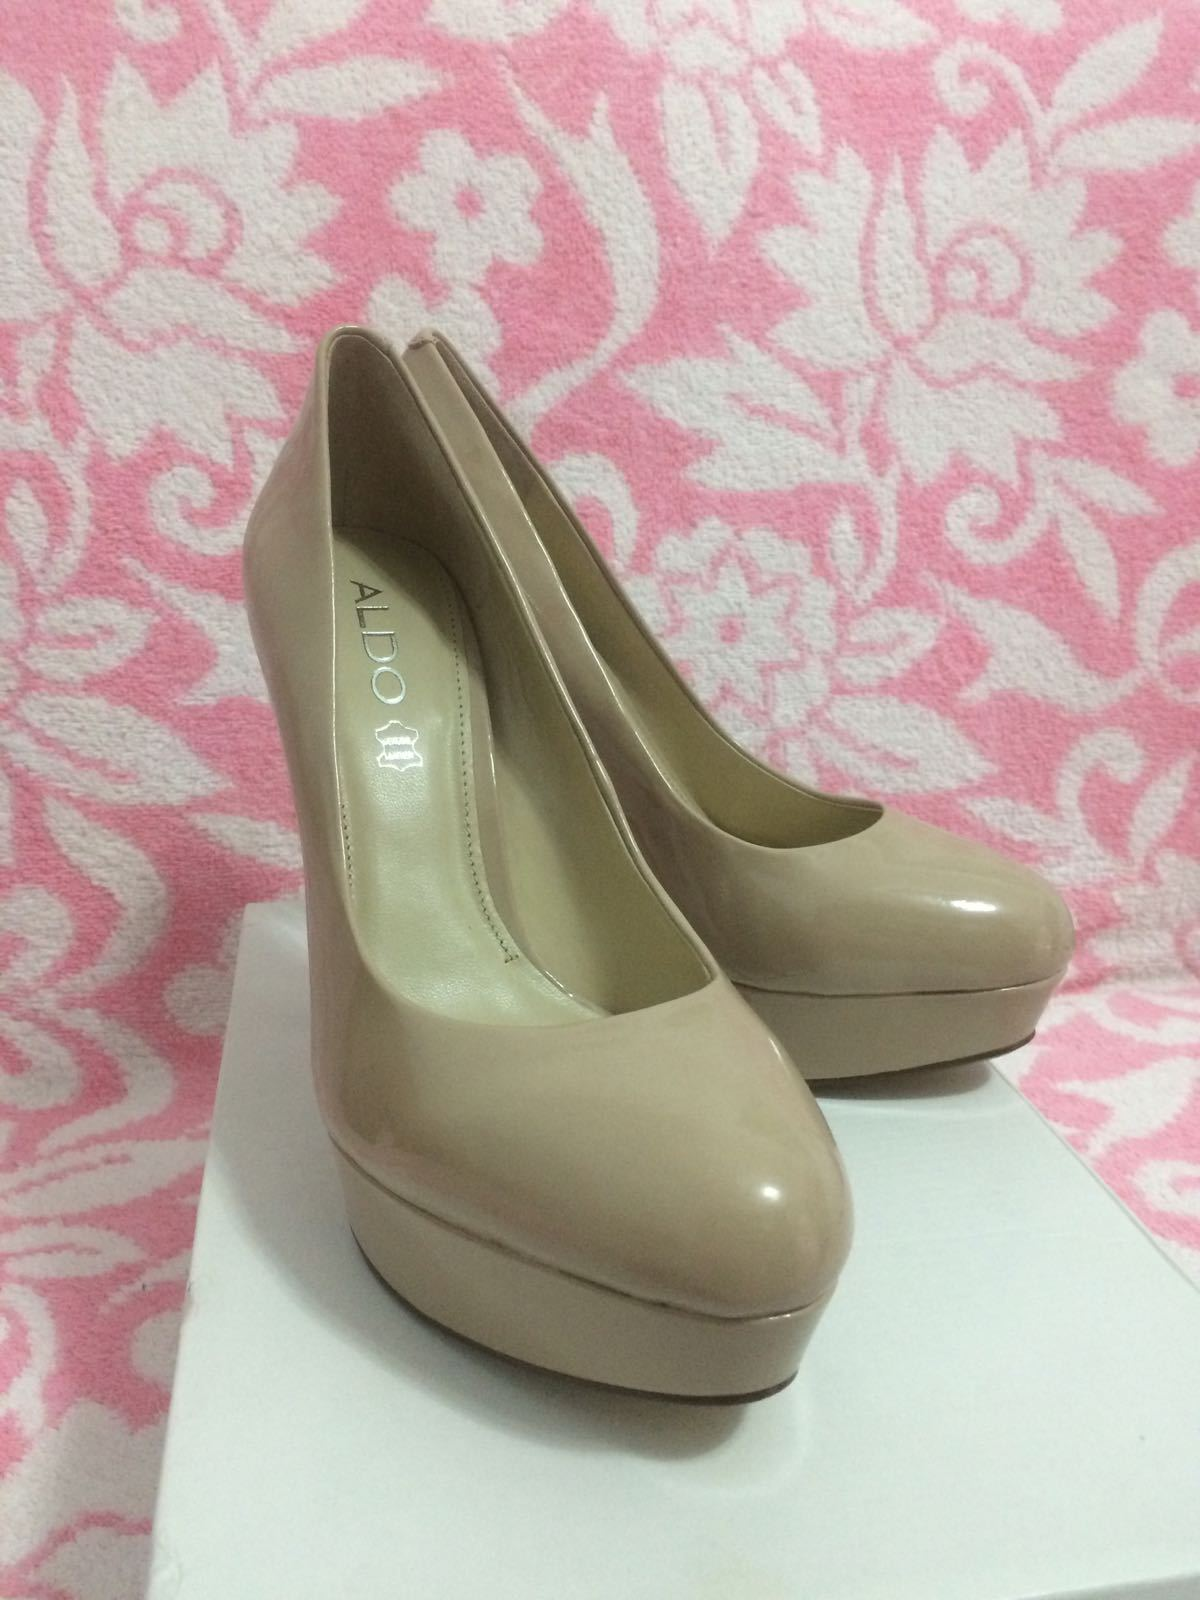 ALDO MONIER NUDE PUMPS UK6 HEELS - SIZE US9/ UK6 PUMPS / EU39 - NEW IN A BOX d8961a